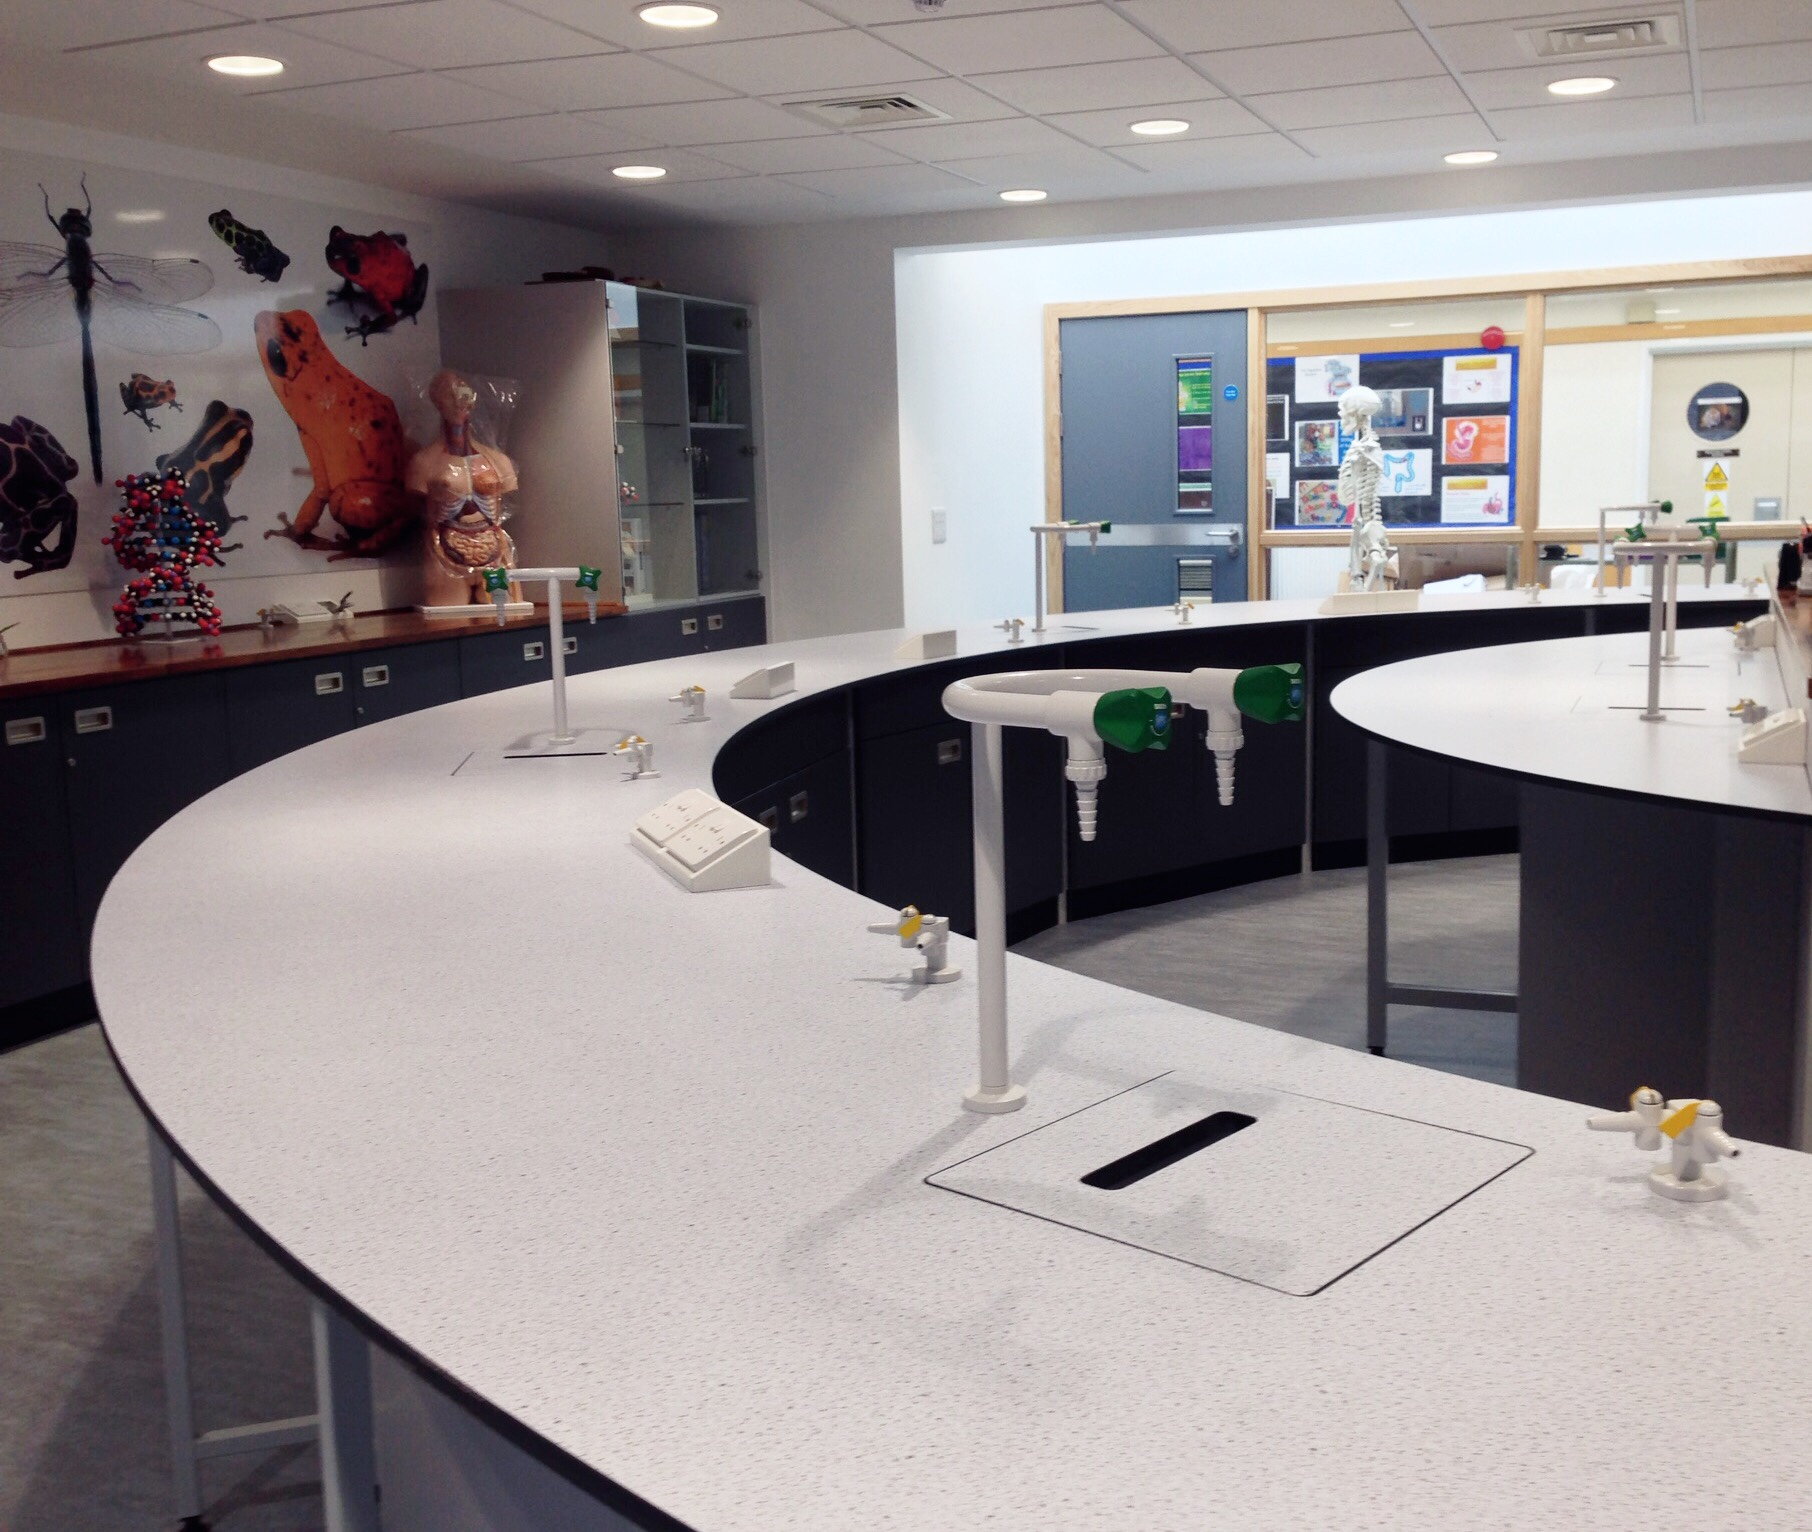 AJT Laboratory Furniture Design trespa WorkTops Toplab School Furniture School refurb Associated Joinery Techniques